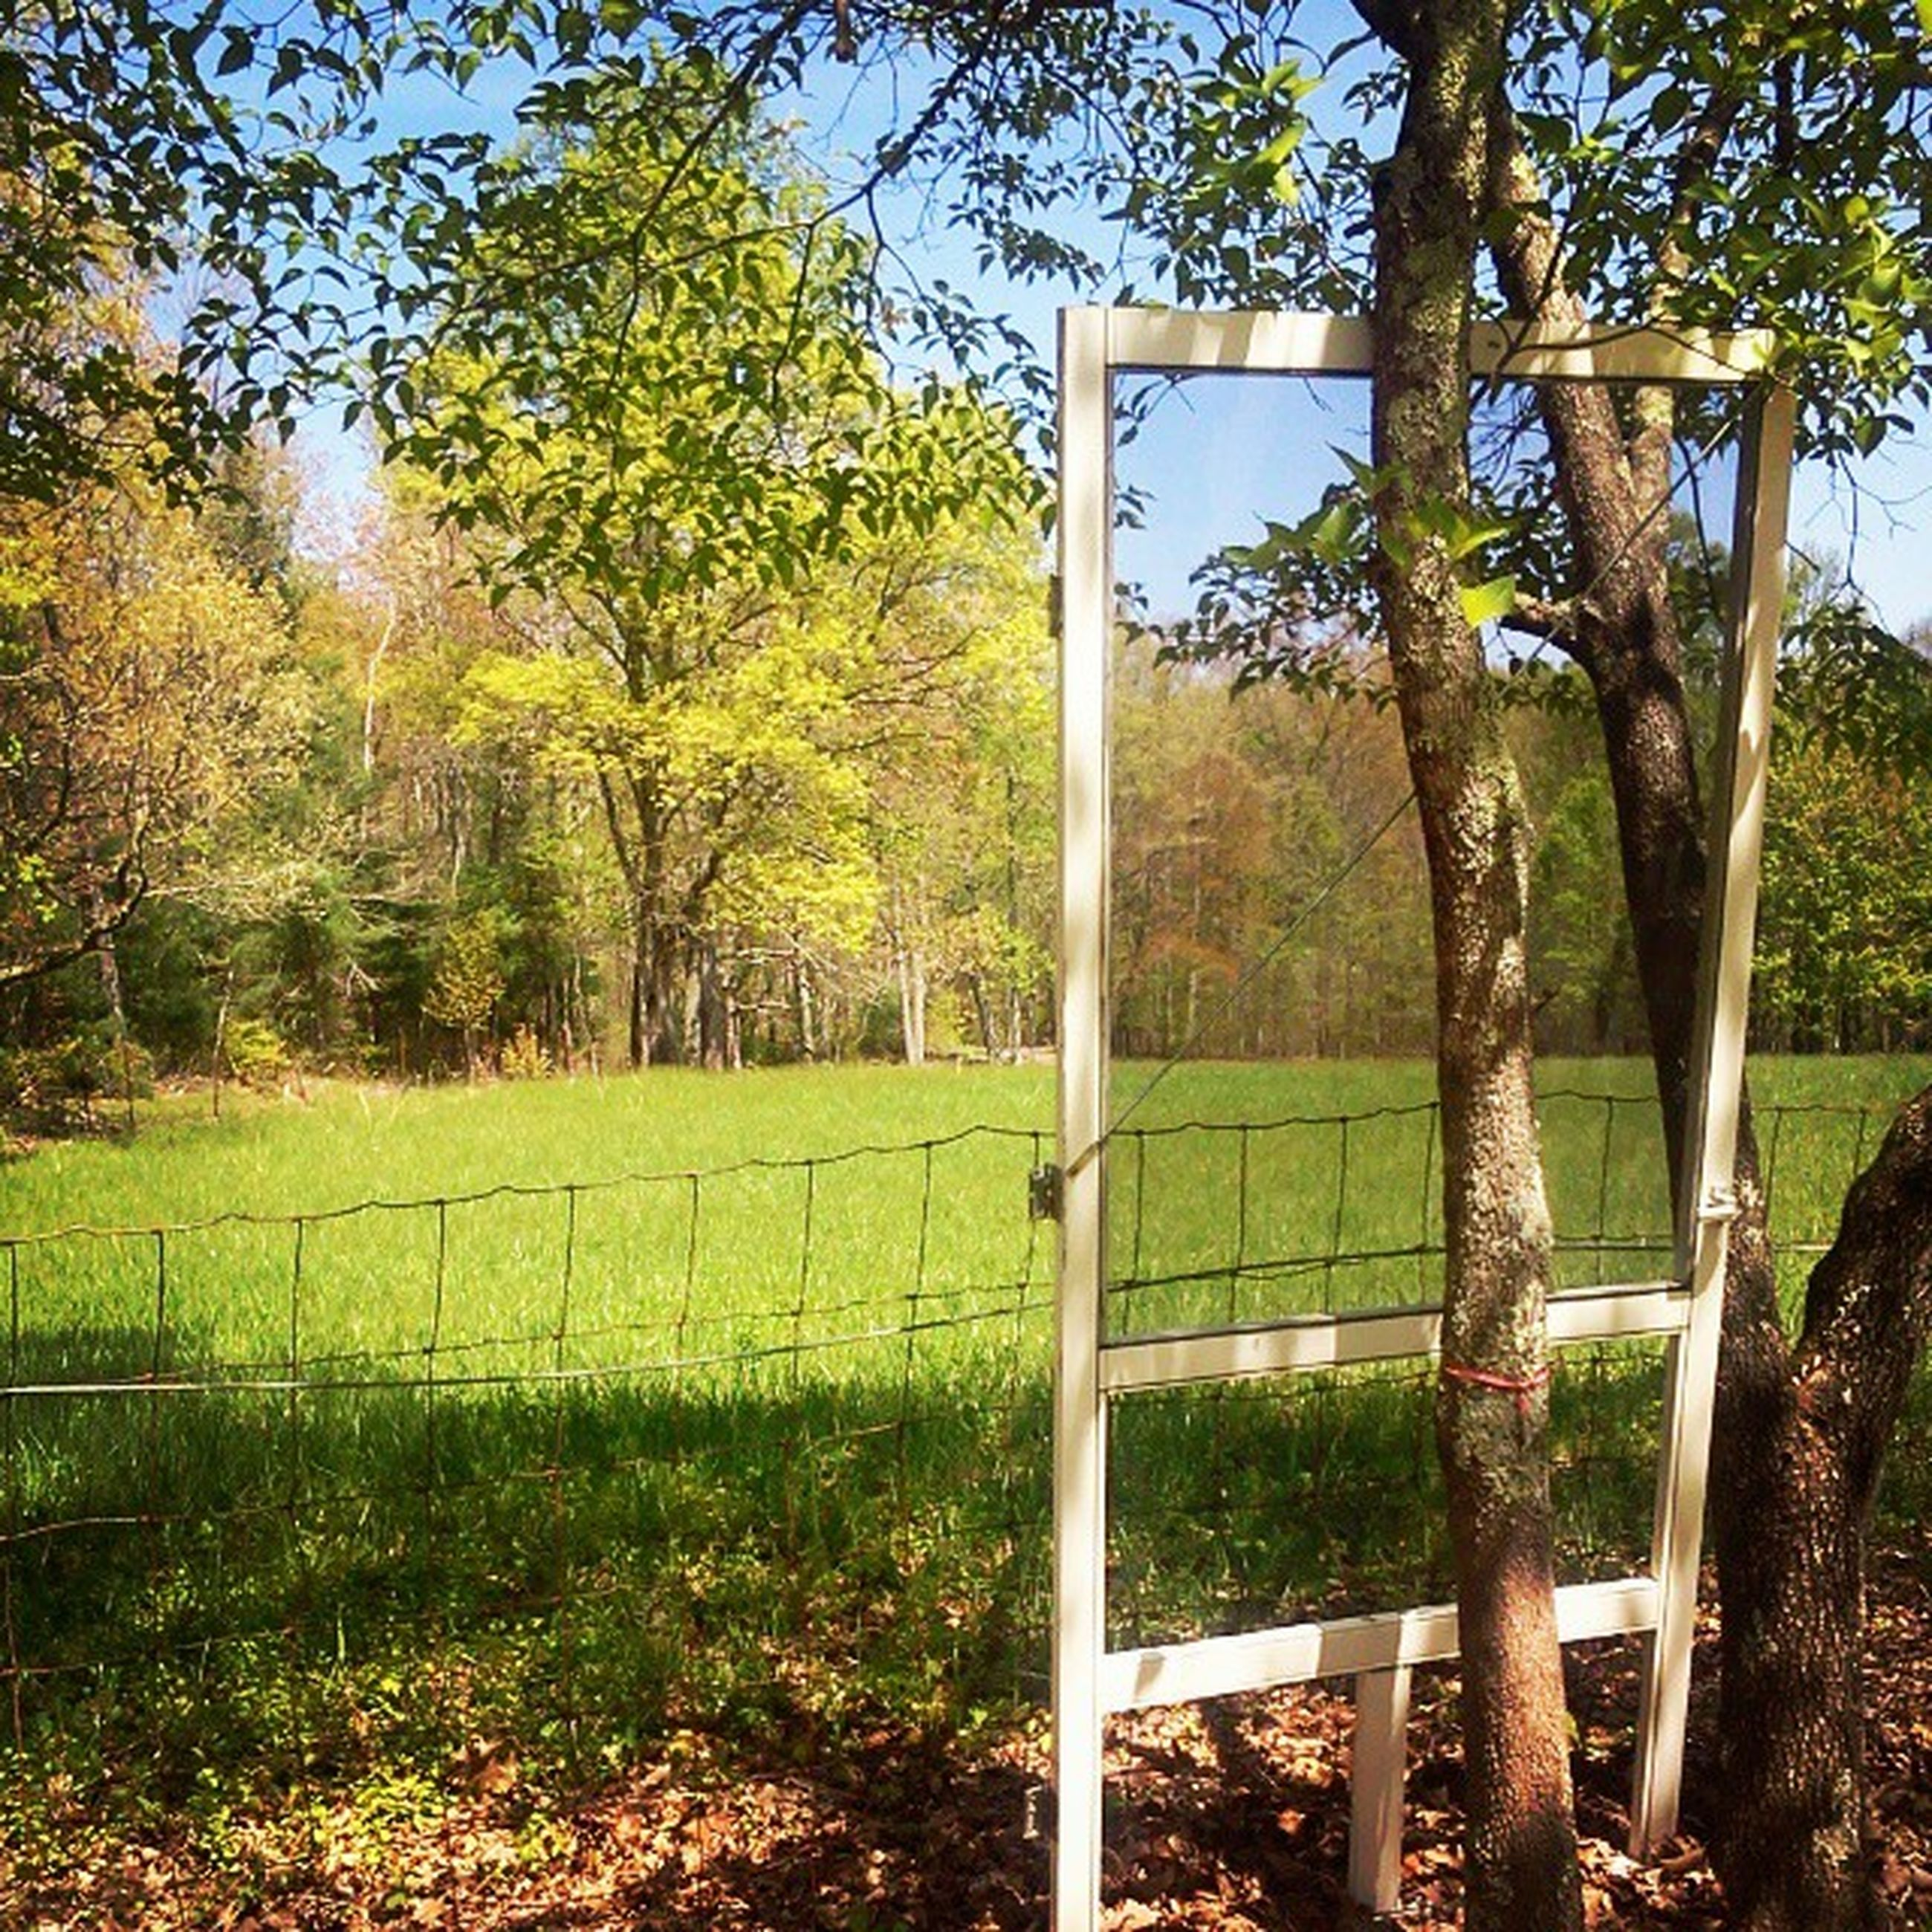 tree, grass, green color, growth, field, fence, sunlight, tranquility, wood - material, nature, tree trunk, day, sky, grassy, landscape, tranquil scene, no people, branch, clear sky, outdoors